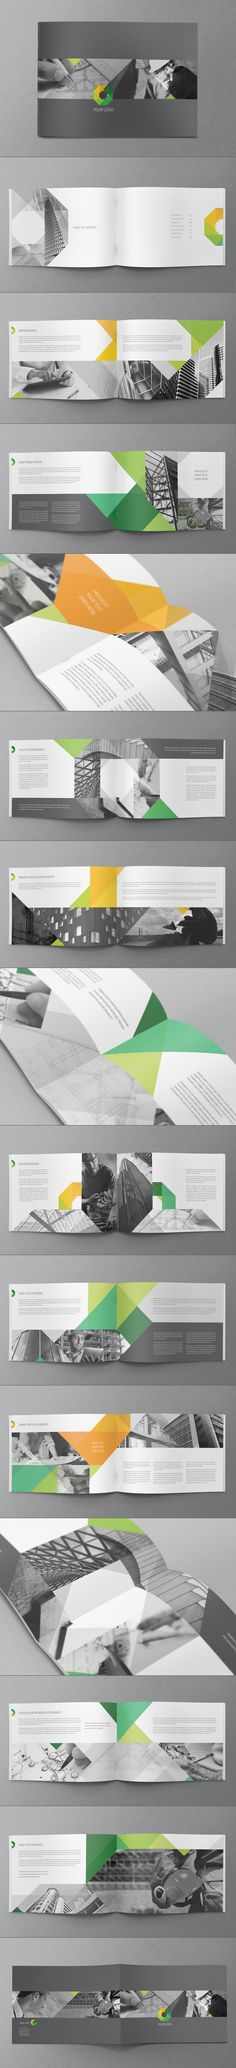 Modern Architecture Brochure by Abra Design, via Behance #design #brochure